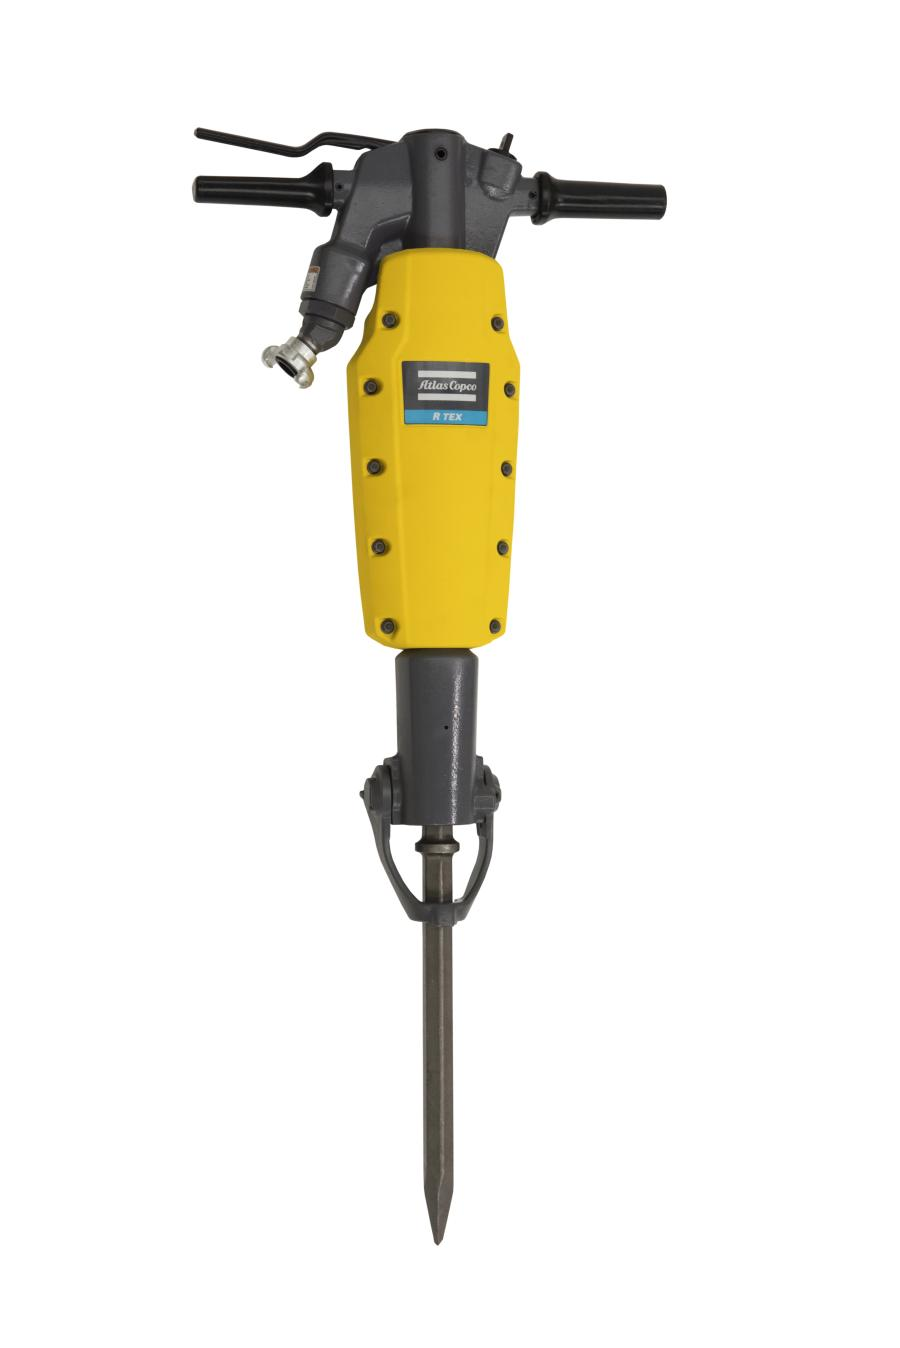 Atlas Copco's RTEX pneumatic breaker offers rental centers and contractors a cost